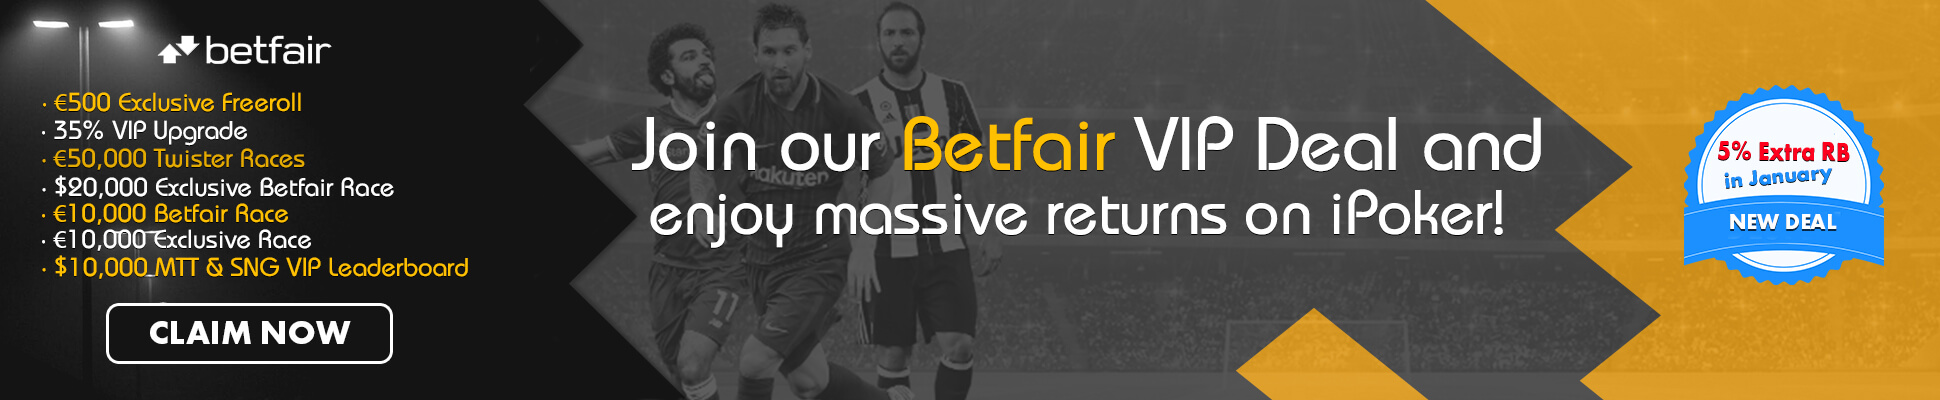 betfair slider banner january New Badge 1 Blue